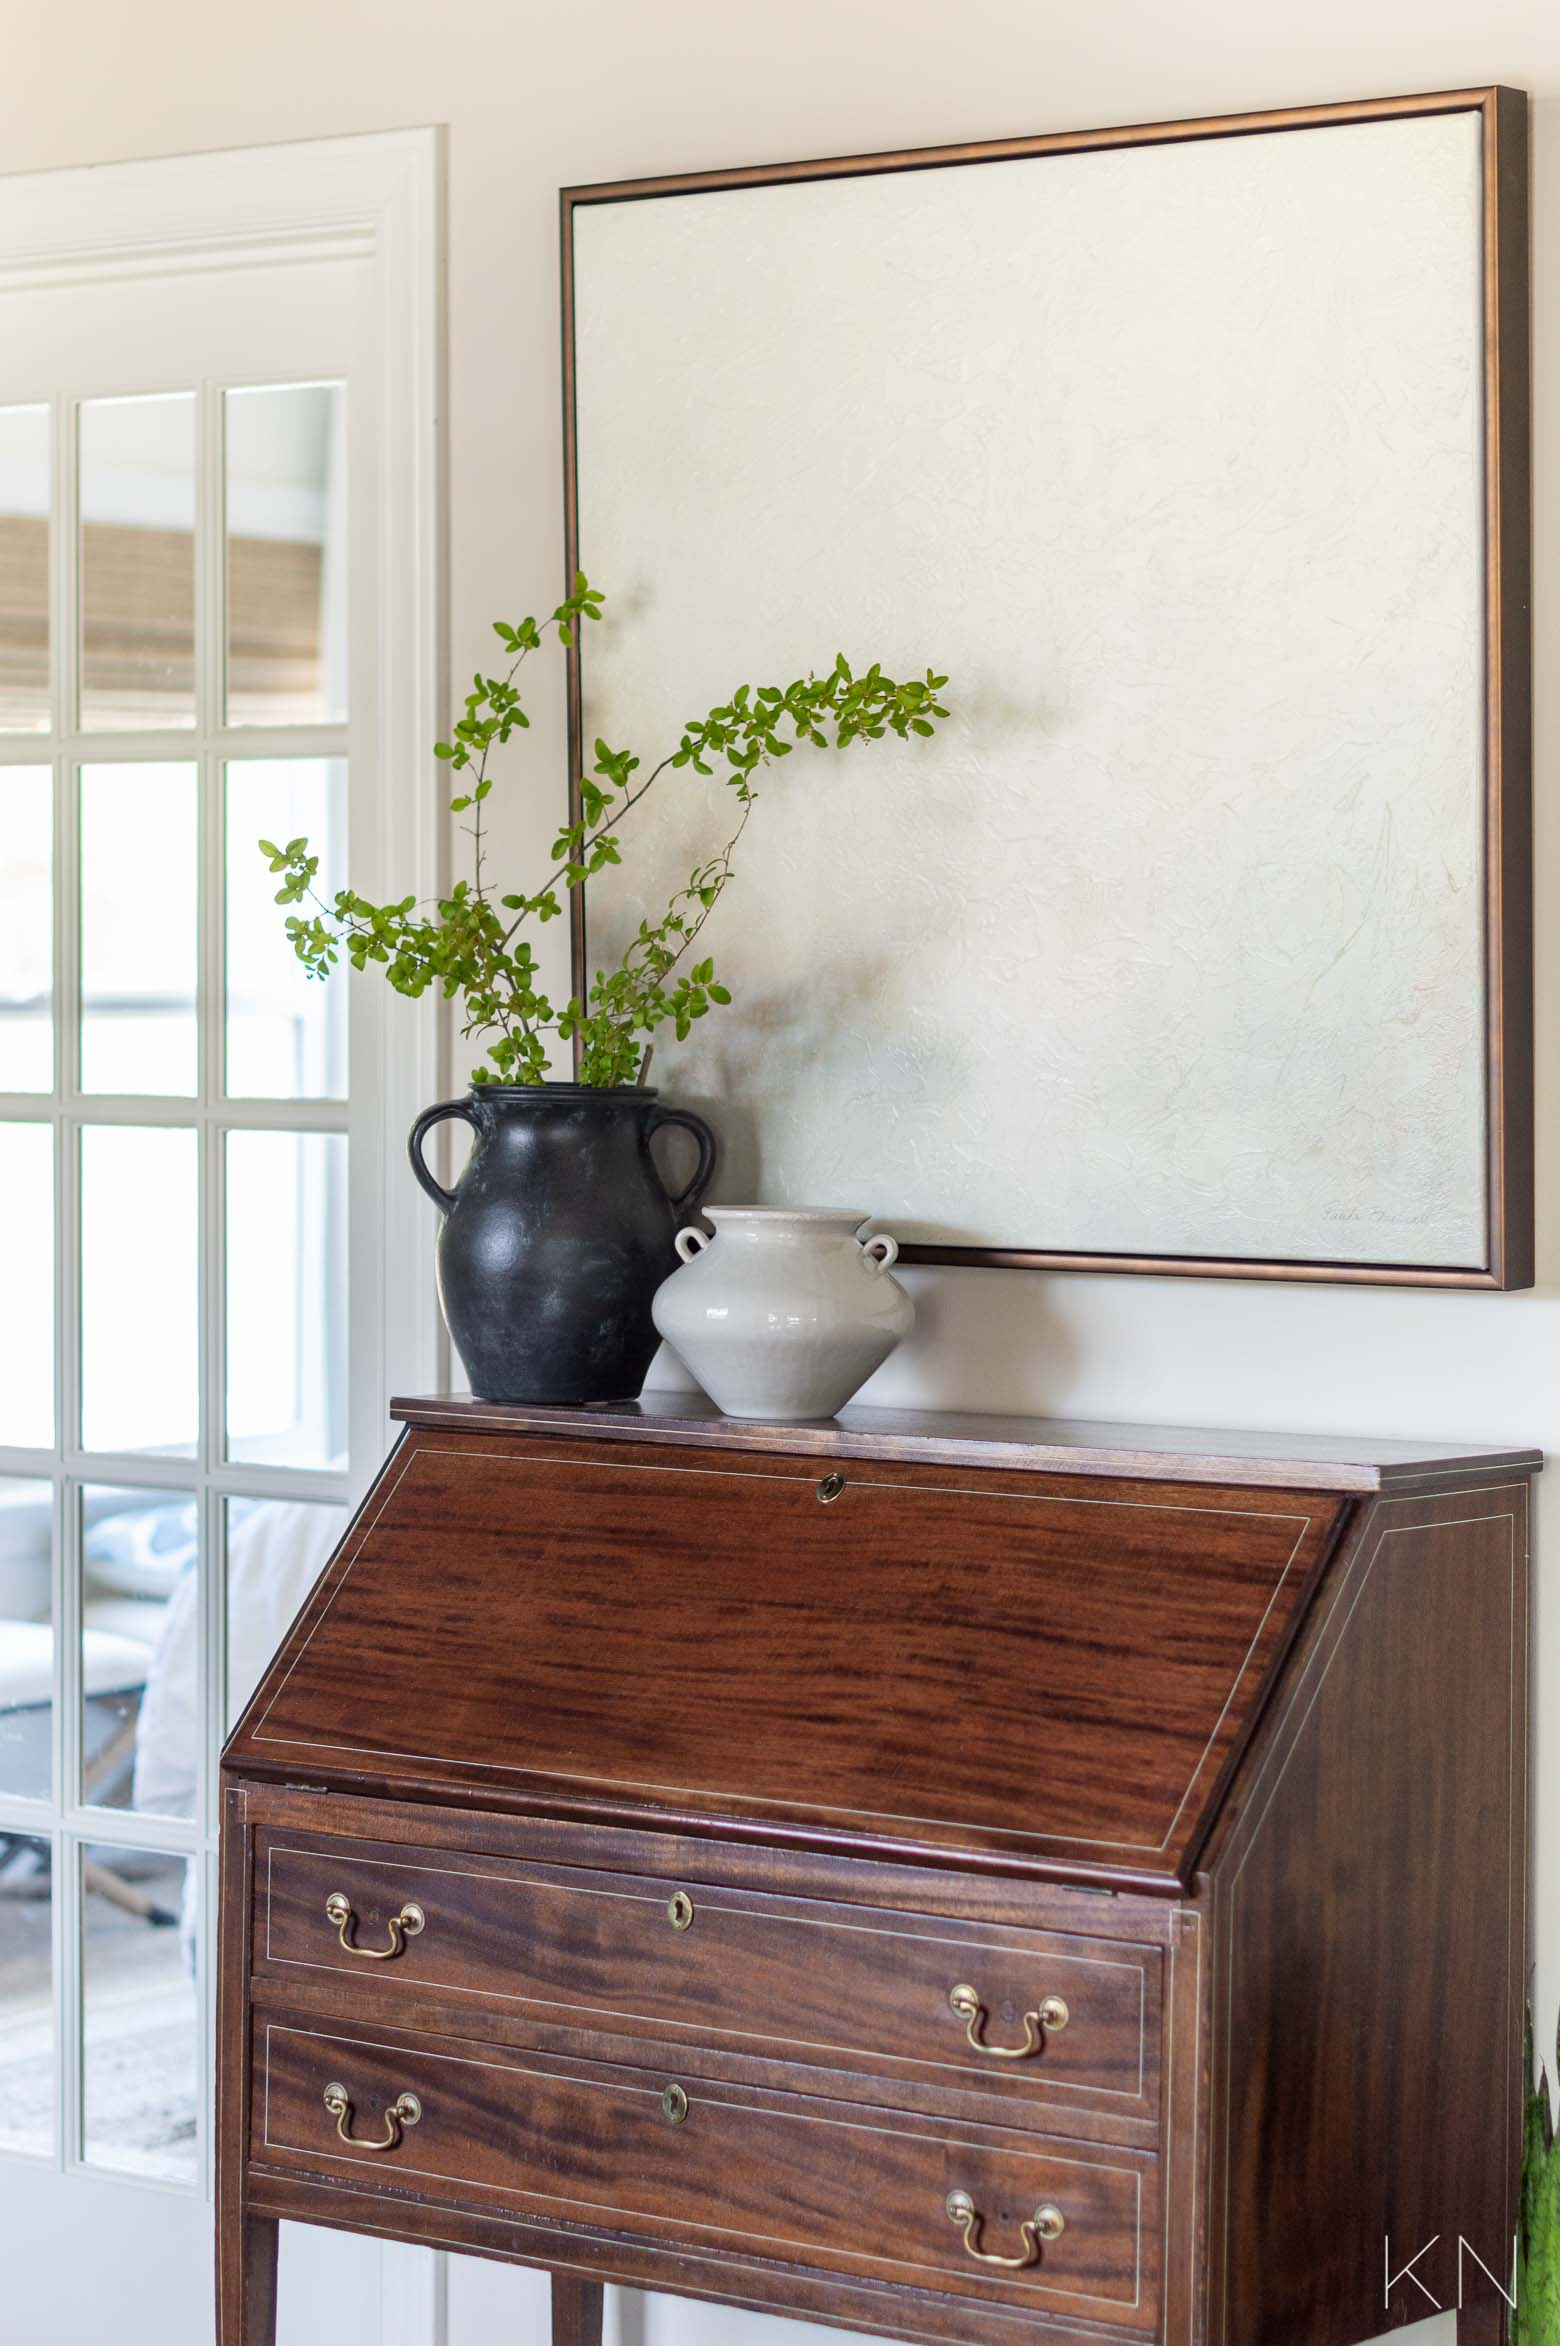 Mixing Antique and Modern Furniture in Living Room Decor